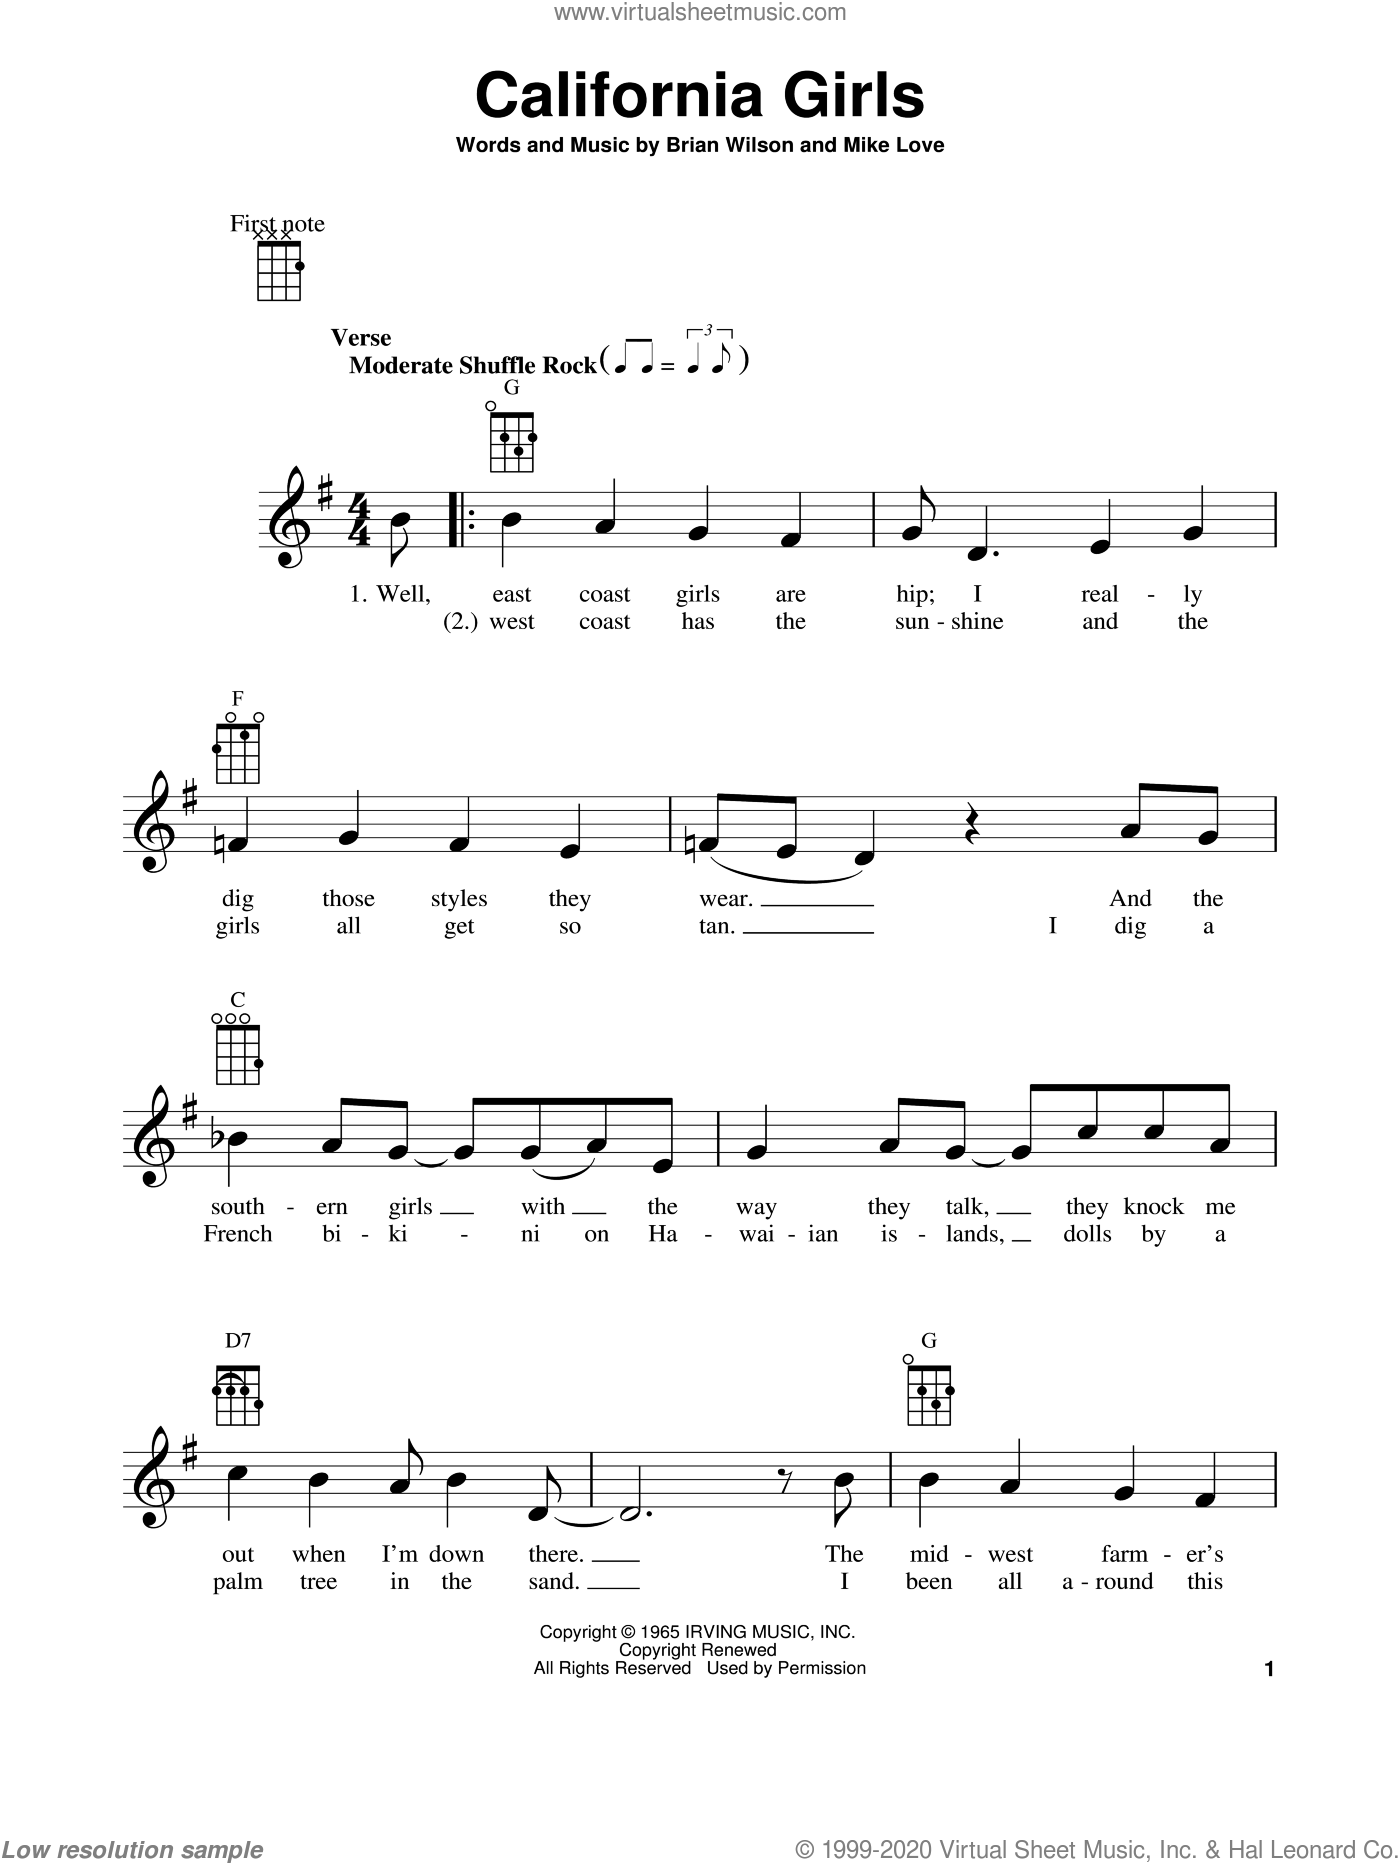 California Girls sheet music for ukulele by The Beach Boys, Brian Wilson and Mike Love, intermediate